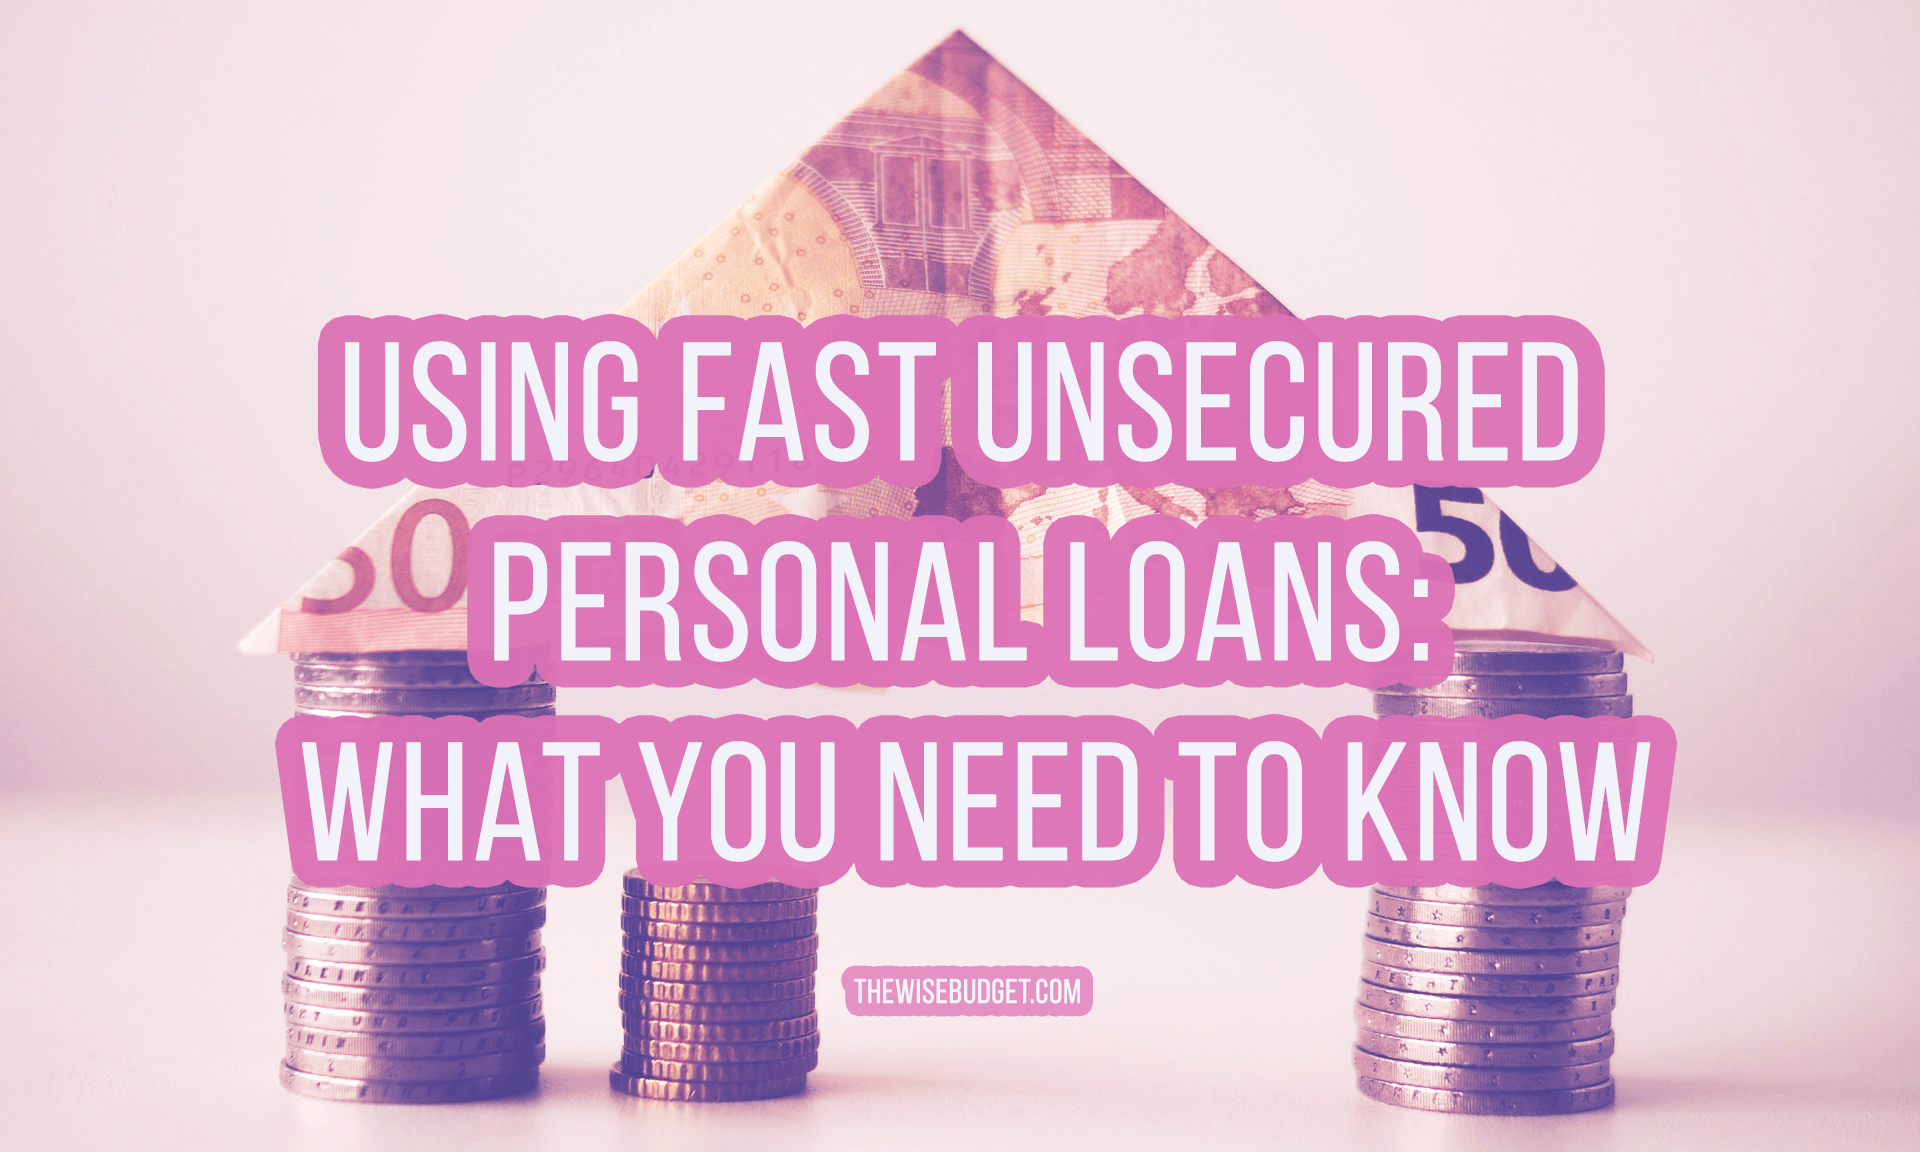 thewisebudget fast unsecured personal loans